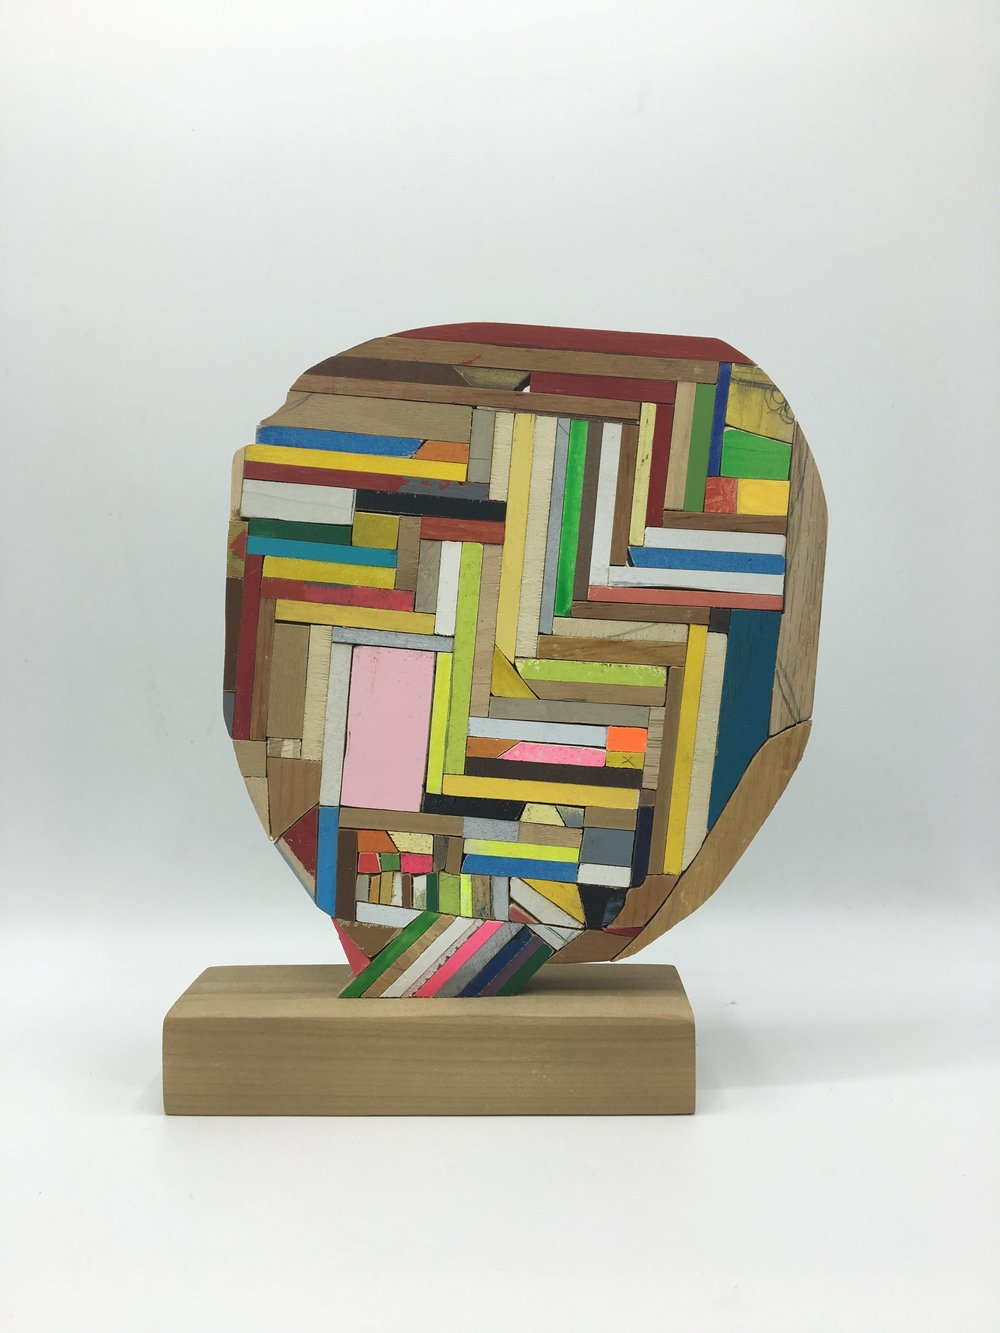 Head, 2016 Wood, Paint, Glue 8 x 6 ½ x 2 in.